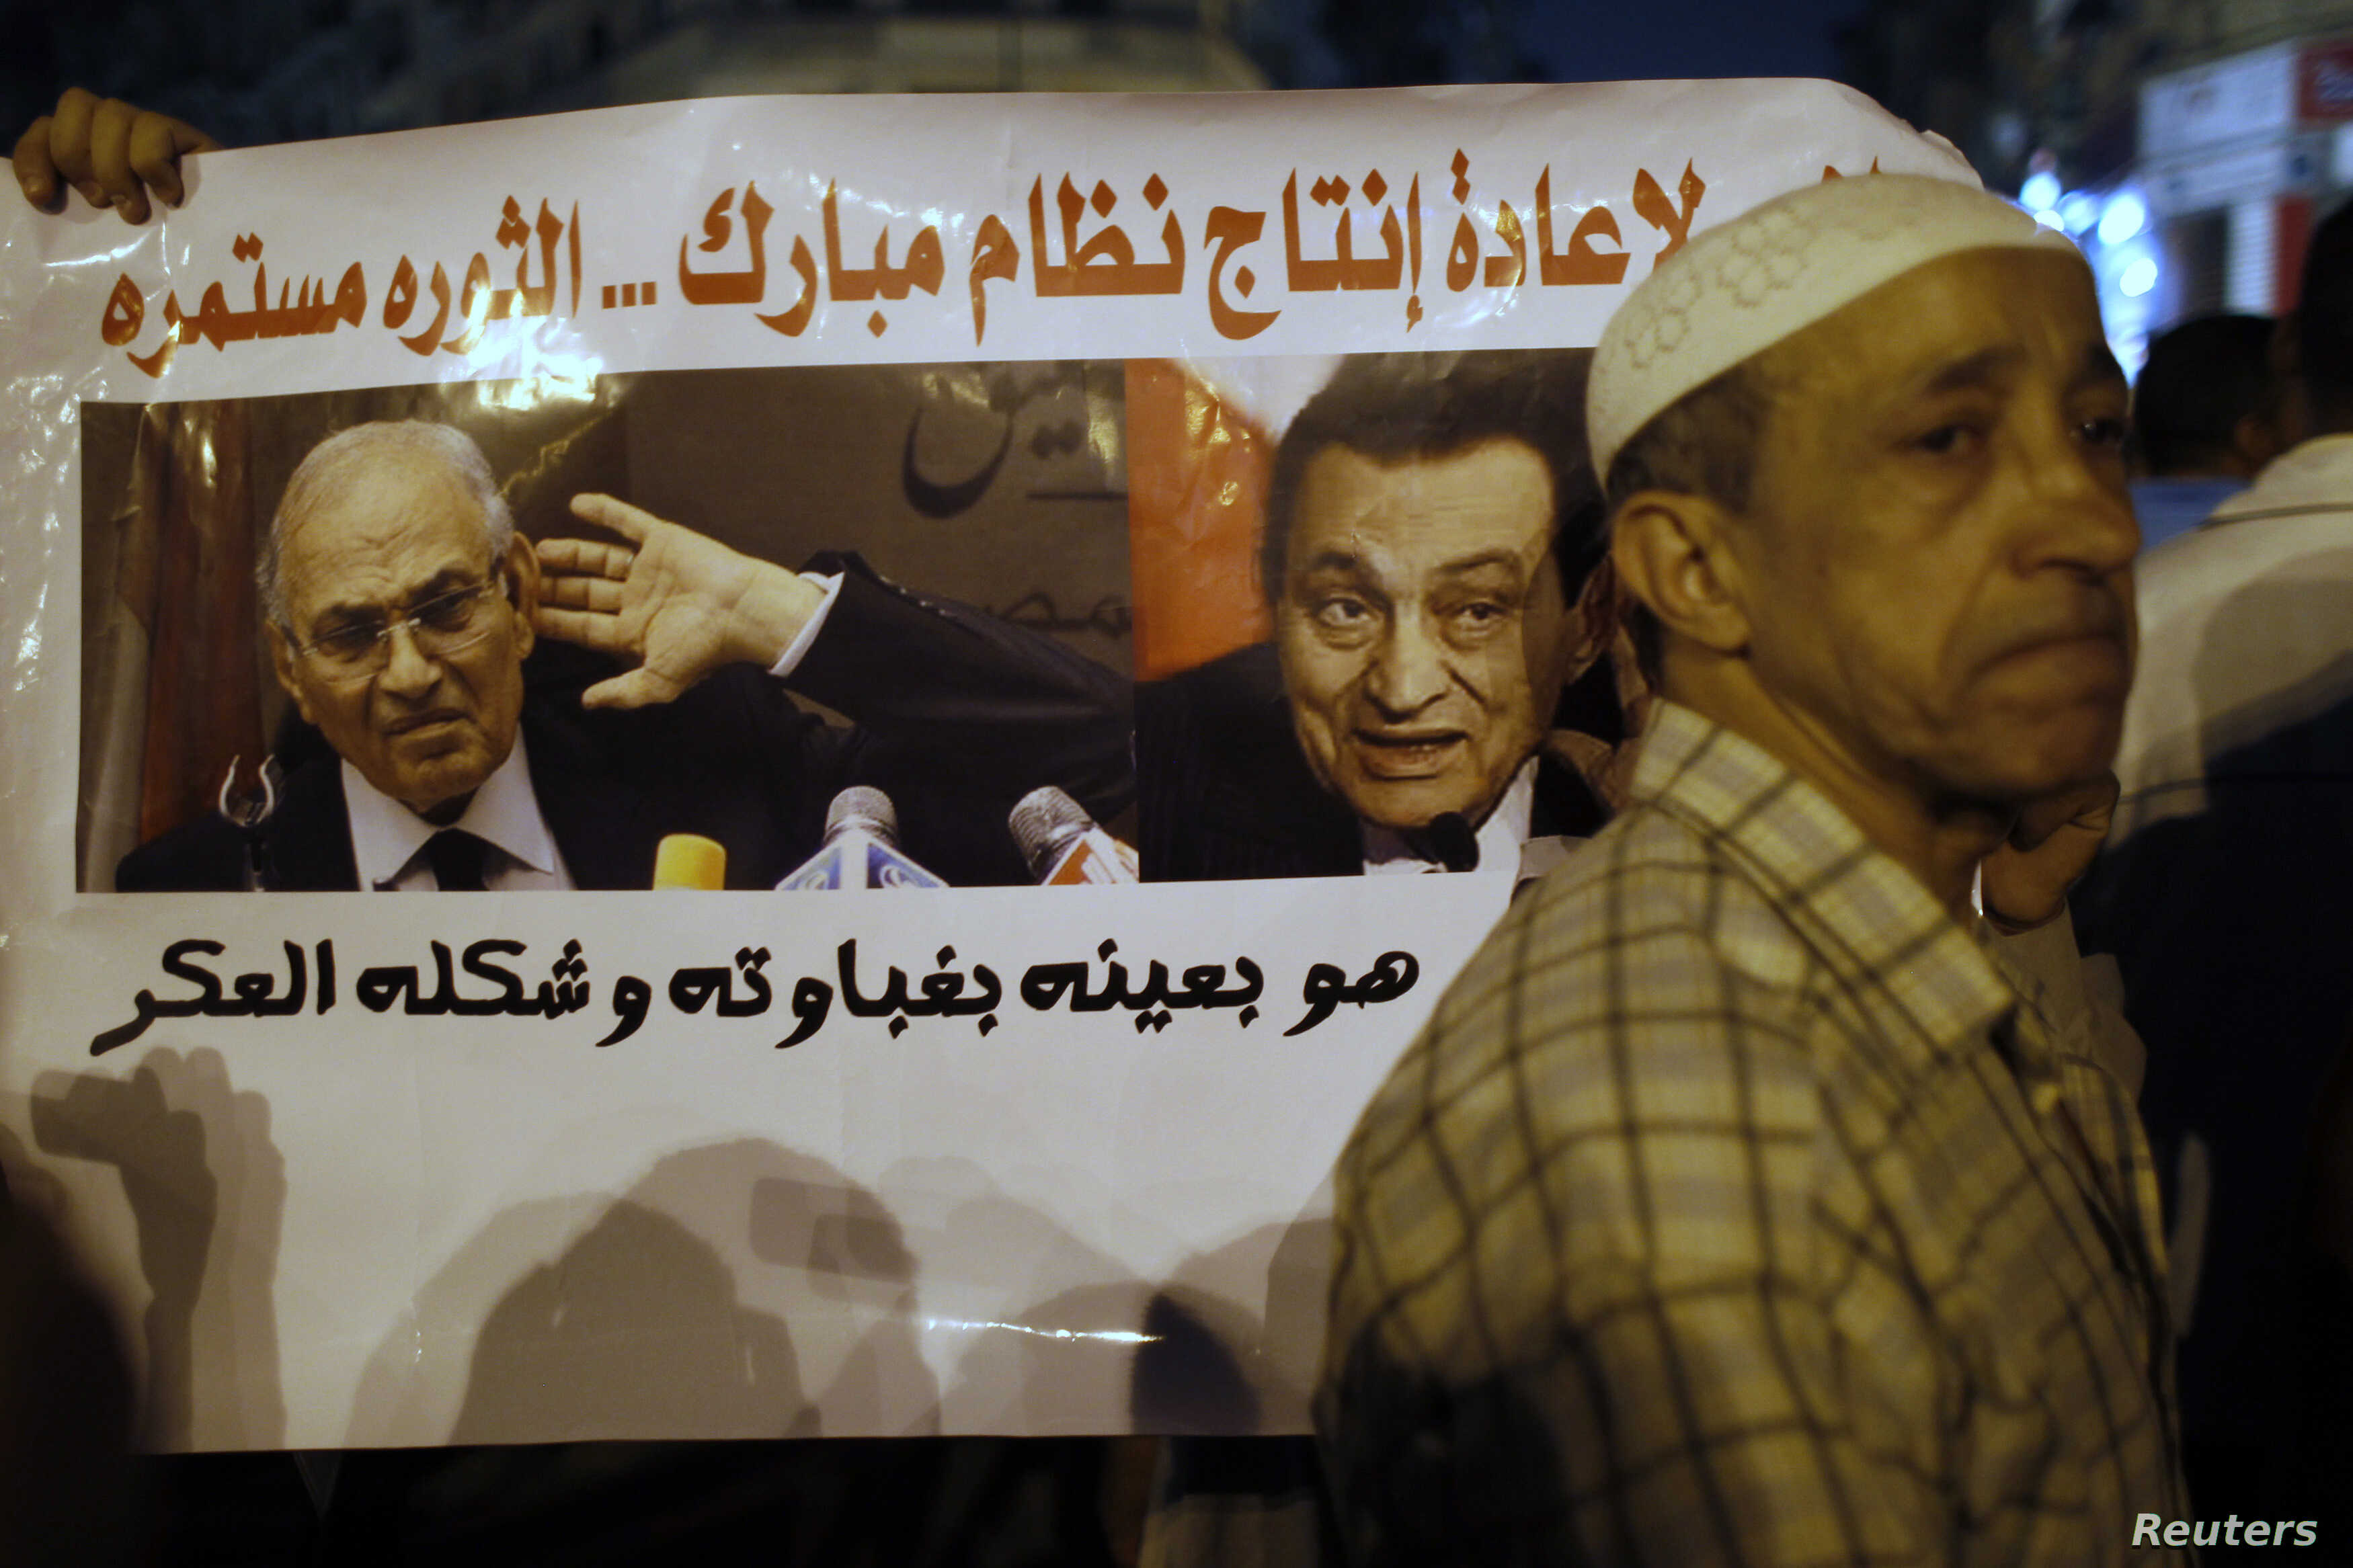 "With a sign that reads ""No to restoring the former Mubarak regime,"" in the background, protesters demonstrate against the results of the first round of Egypt's presidential elections at Tahrir Square in Cairo June 1, 2012."